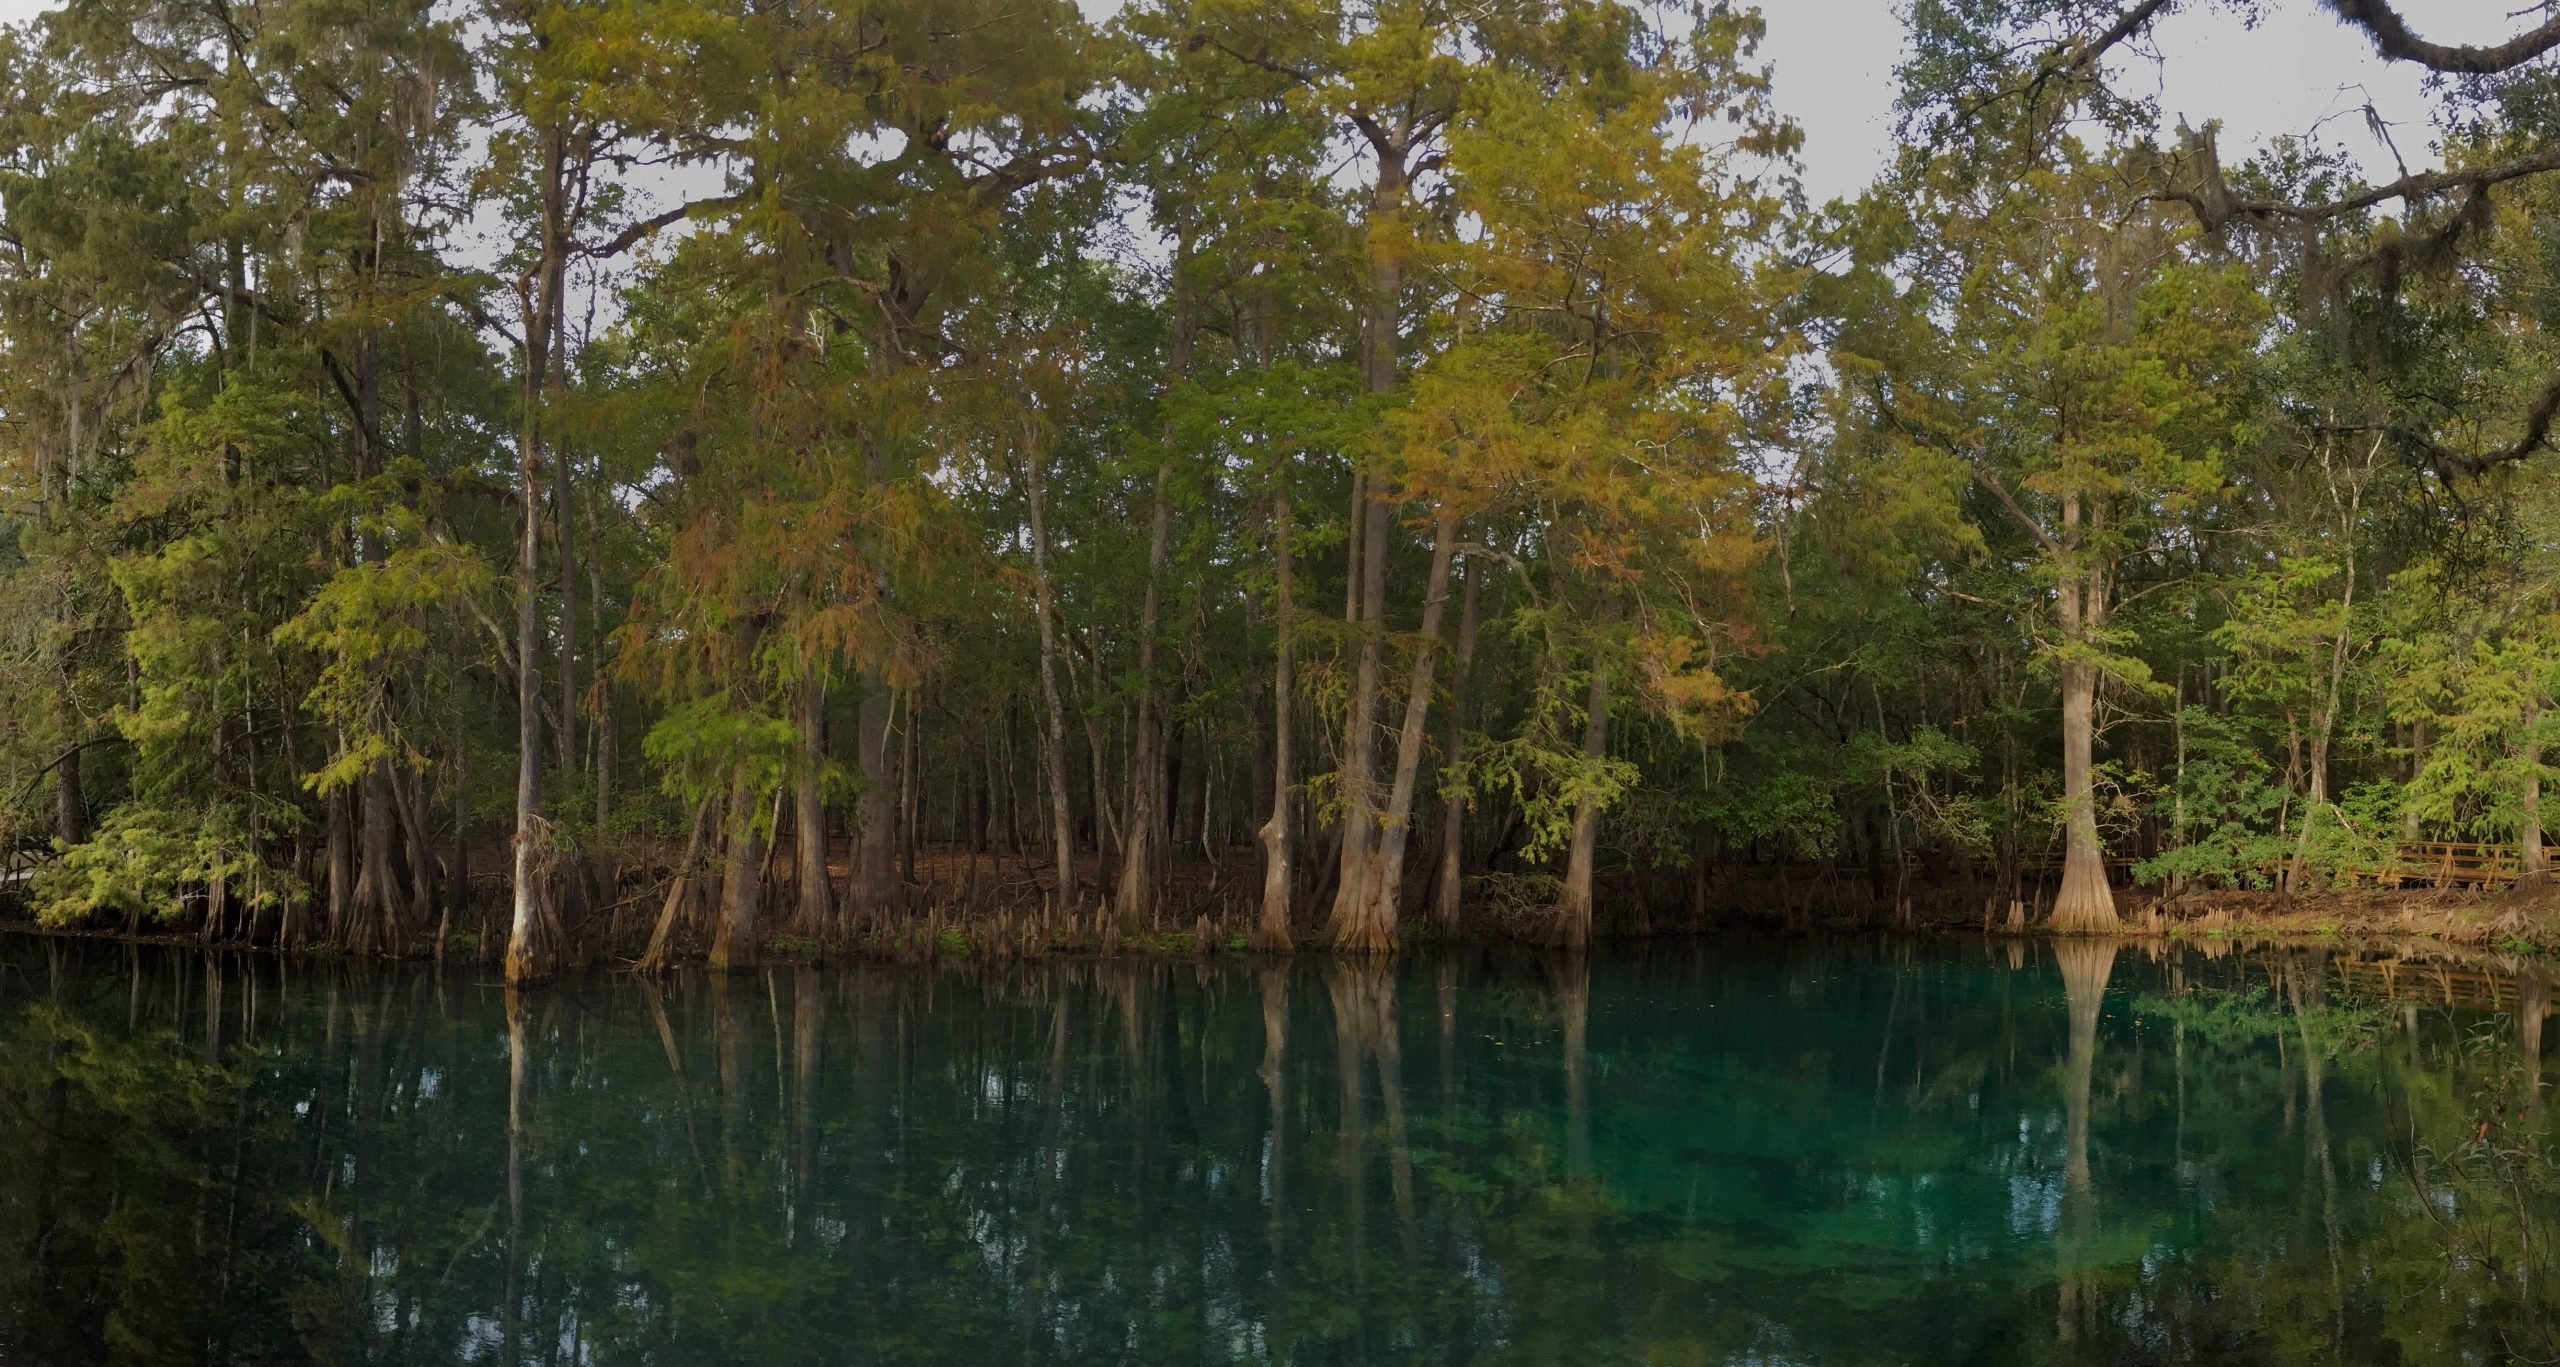 cypress trees grow alongside the water of manatee springs